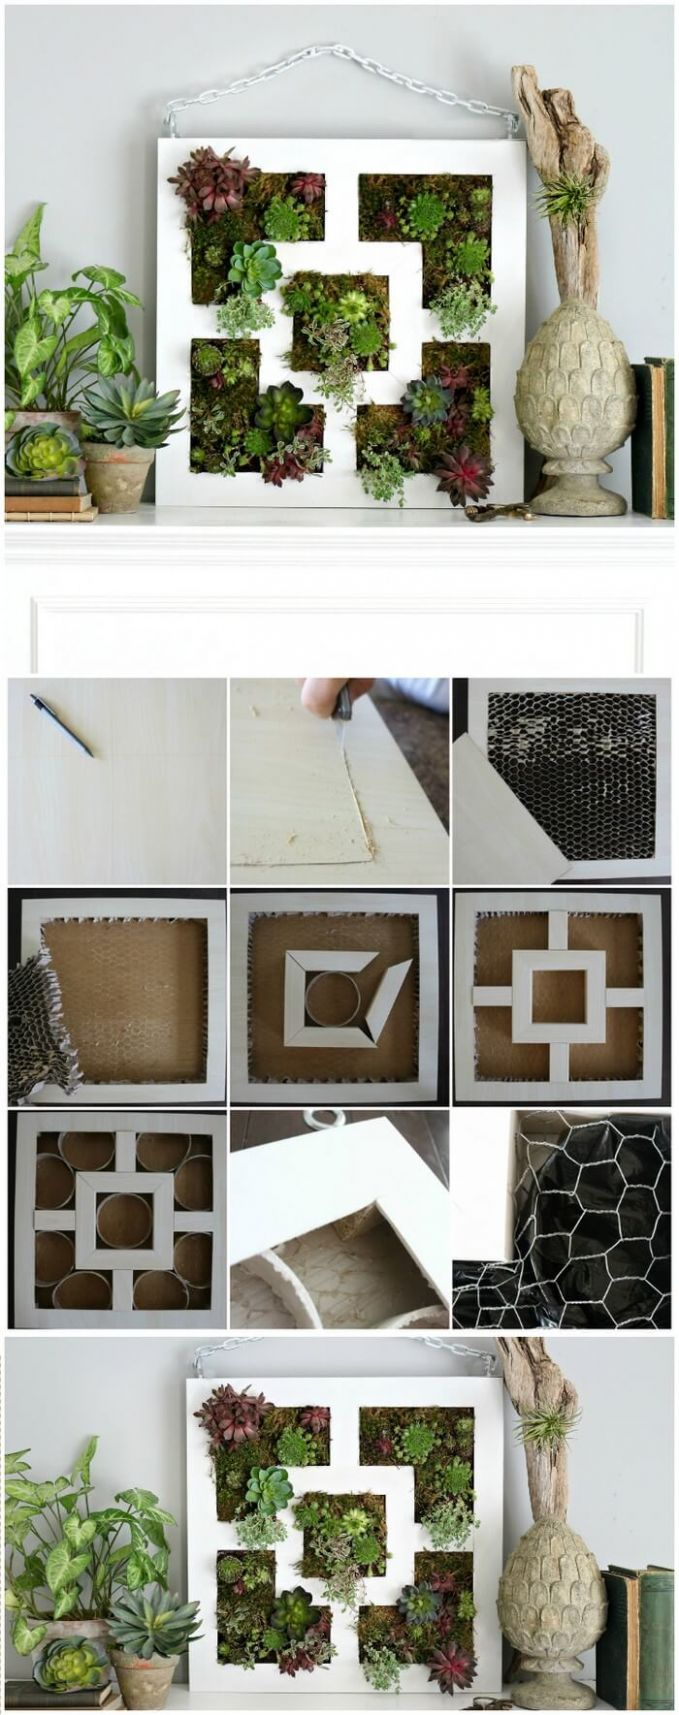 11 Best Home Decor Hacks (Ideas and Projects) for 11